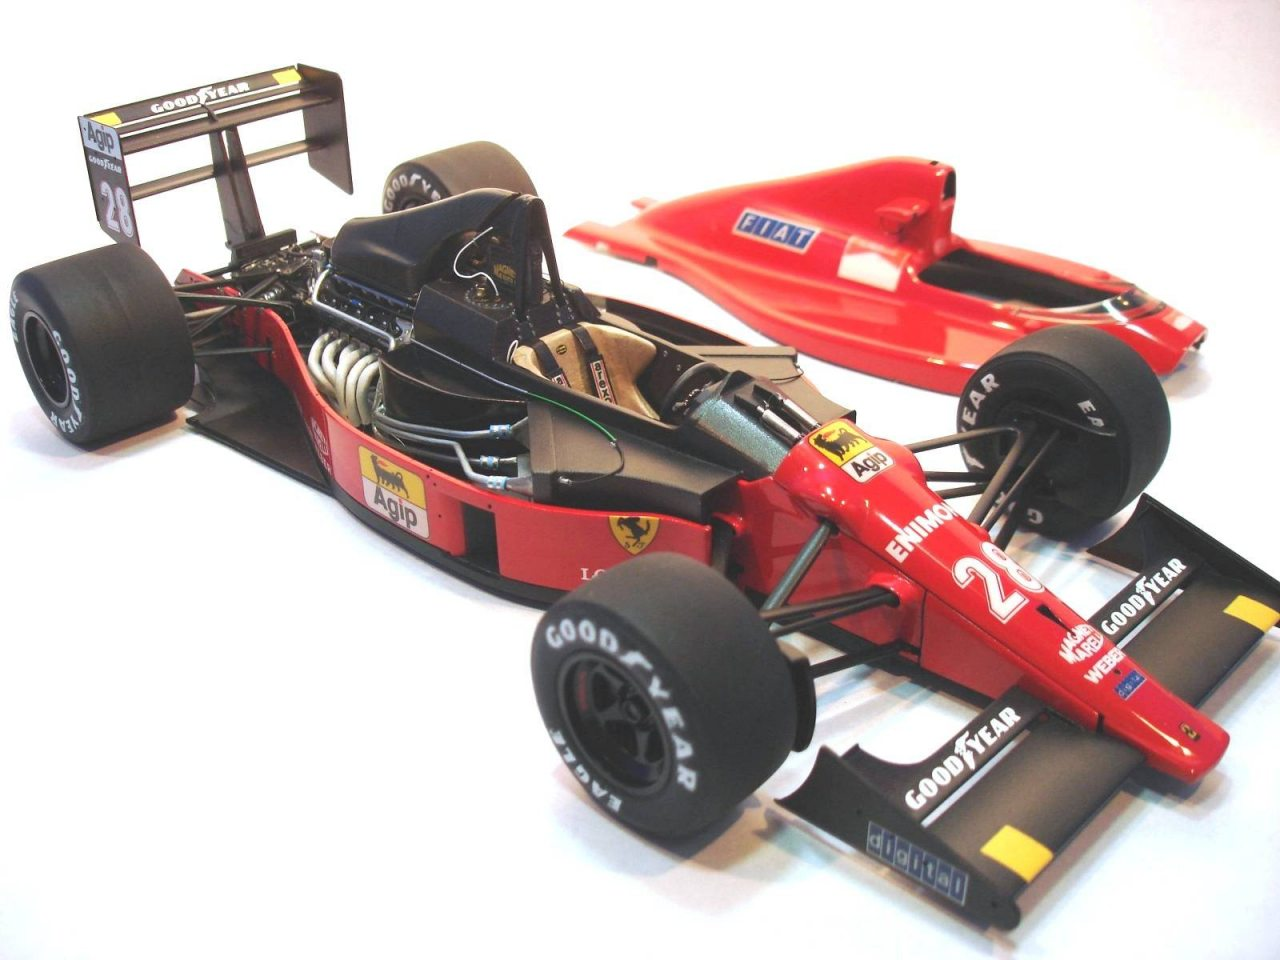 rc kit cars with Building Improving The Ferrari F189 640 Tamiya 1 20 Scale on Watch also 2014 Sema Show Coverage Cars Products additionally Building Improving The Ferrari F189 640 Tamiya 1 20 Scale additionally Build Honda Cb750 further Build R2 D2.